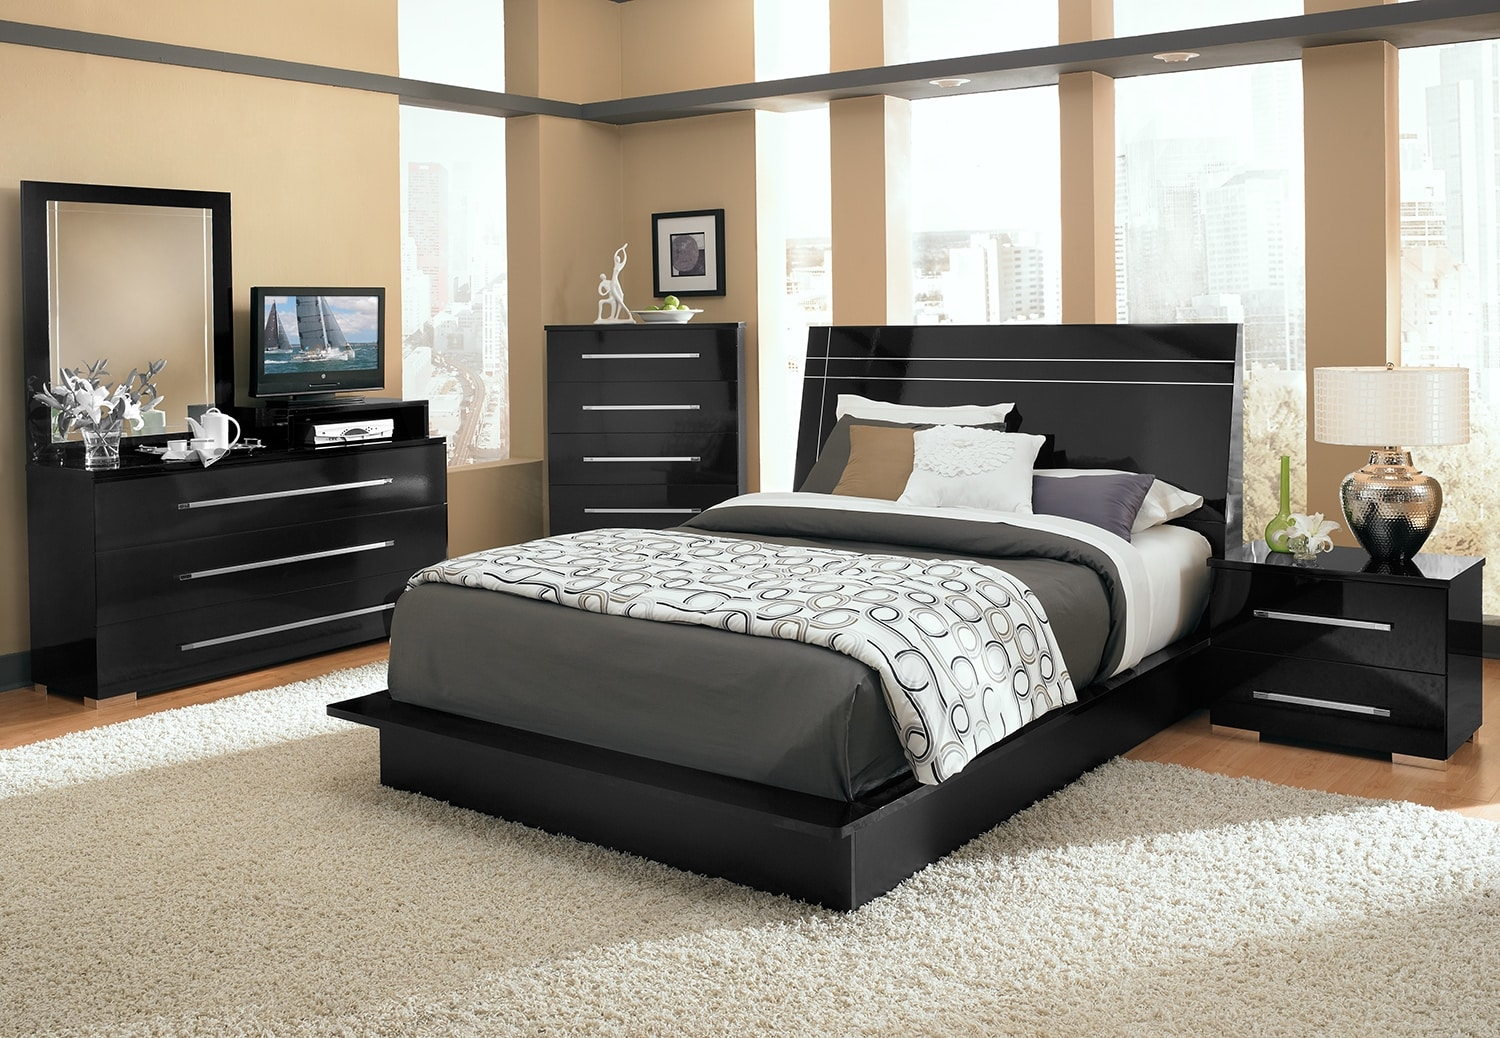 contemporary black bedroom furniture dimora 7 panel bedroom set with media dresser 14959